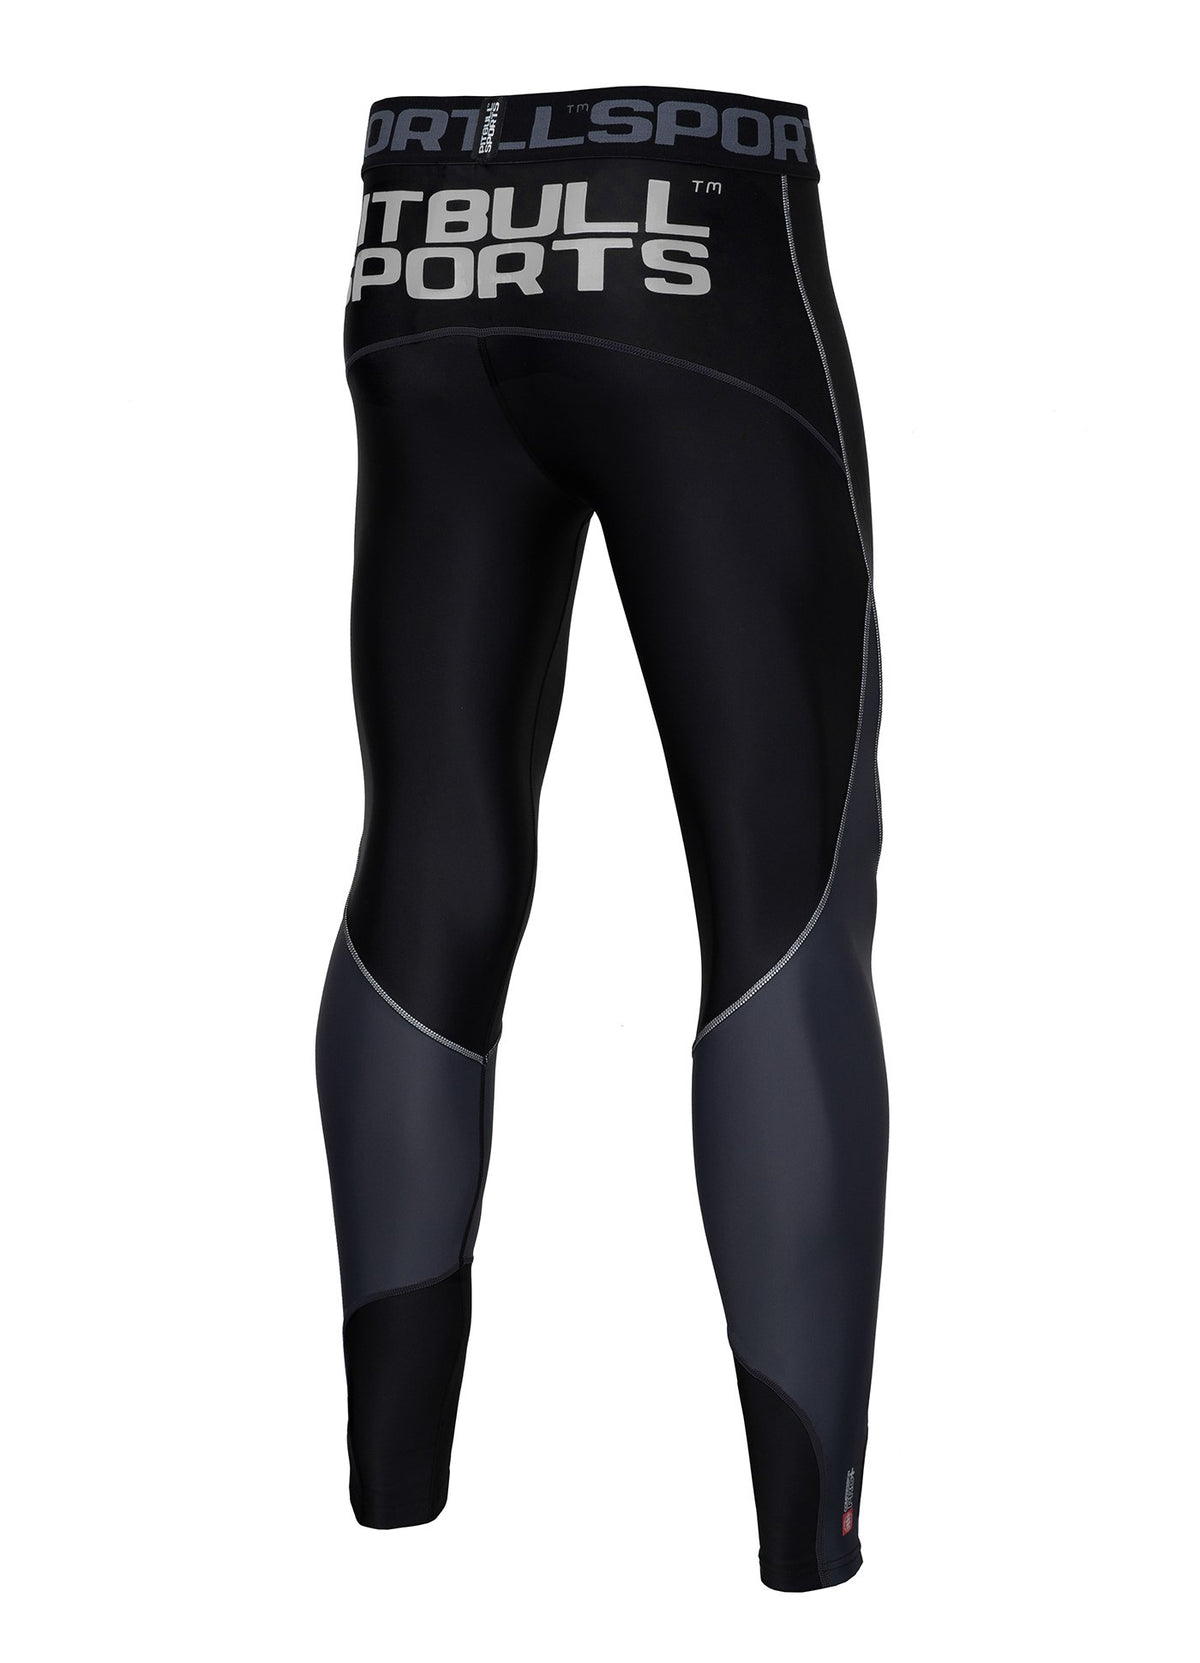 Compression PRO PLUS Pants Black - Pitbull West Coast U.S.A.